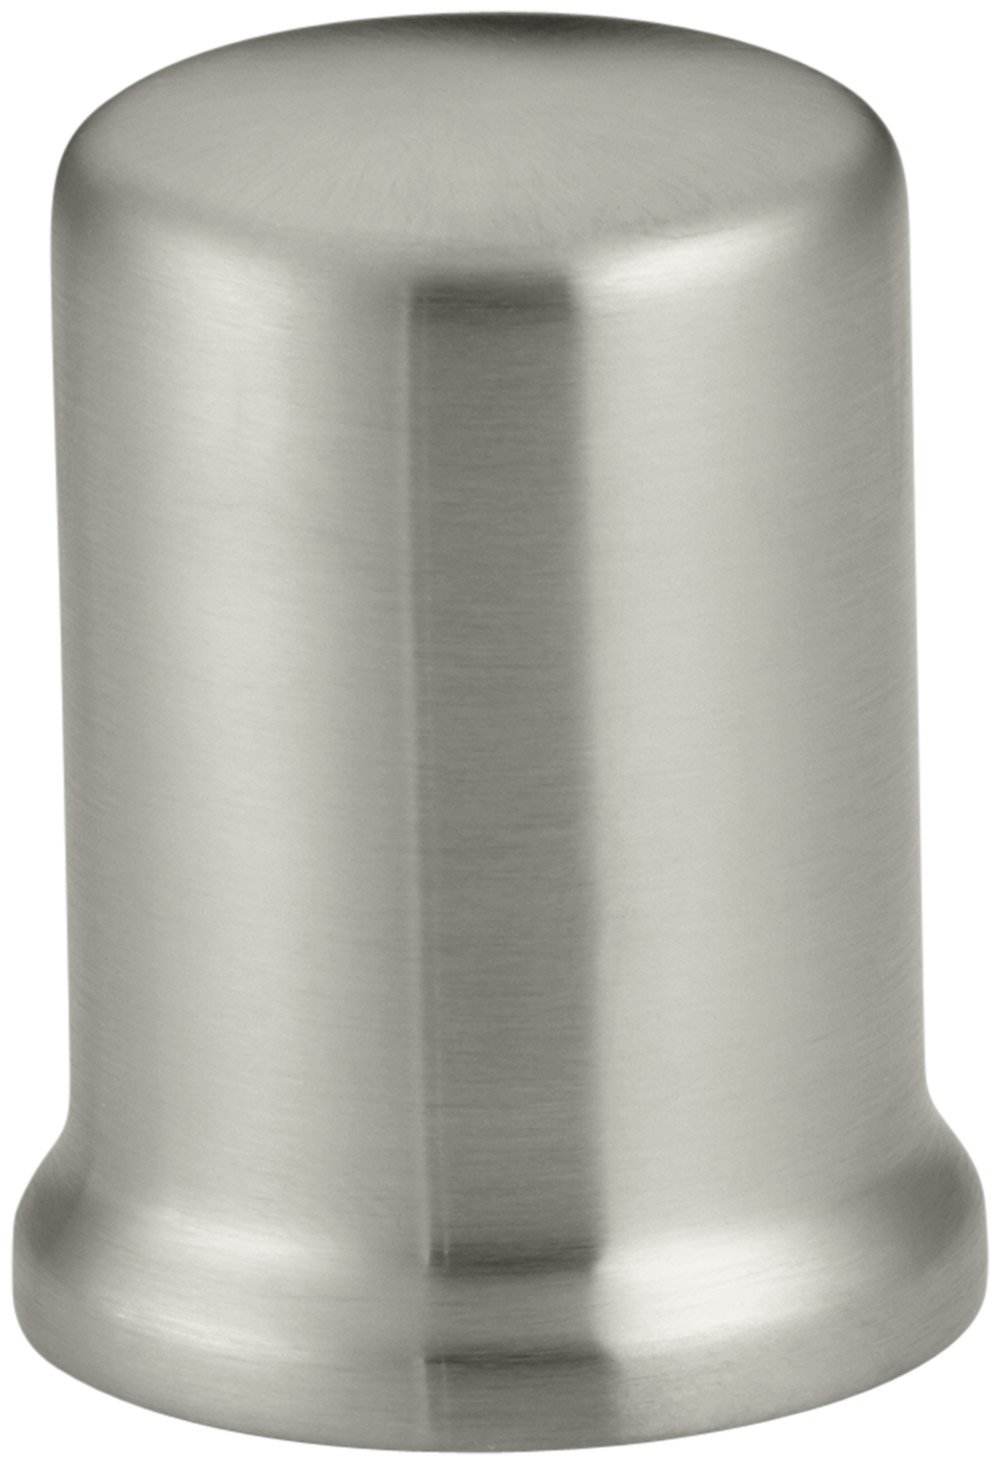 KOHLER K-9111-BN Air Gap Cover with Collar, Vibrant Brushed Nickel